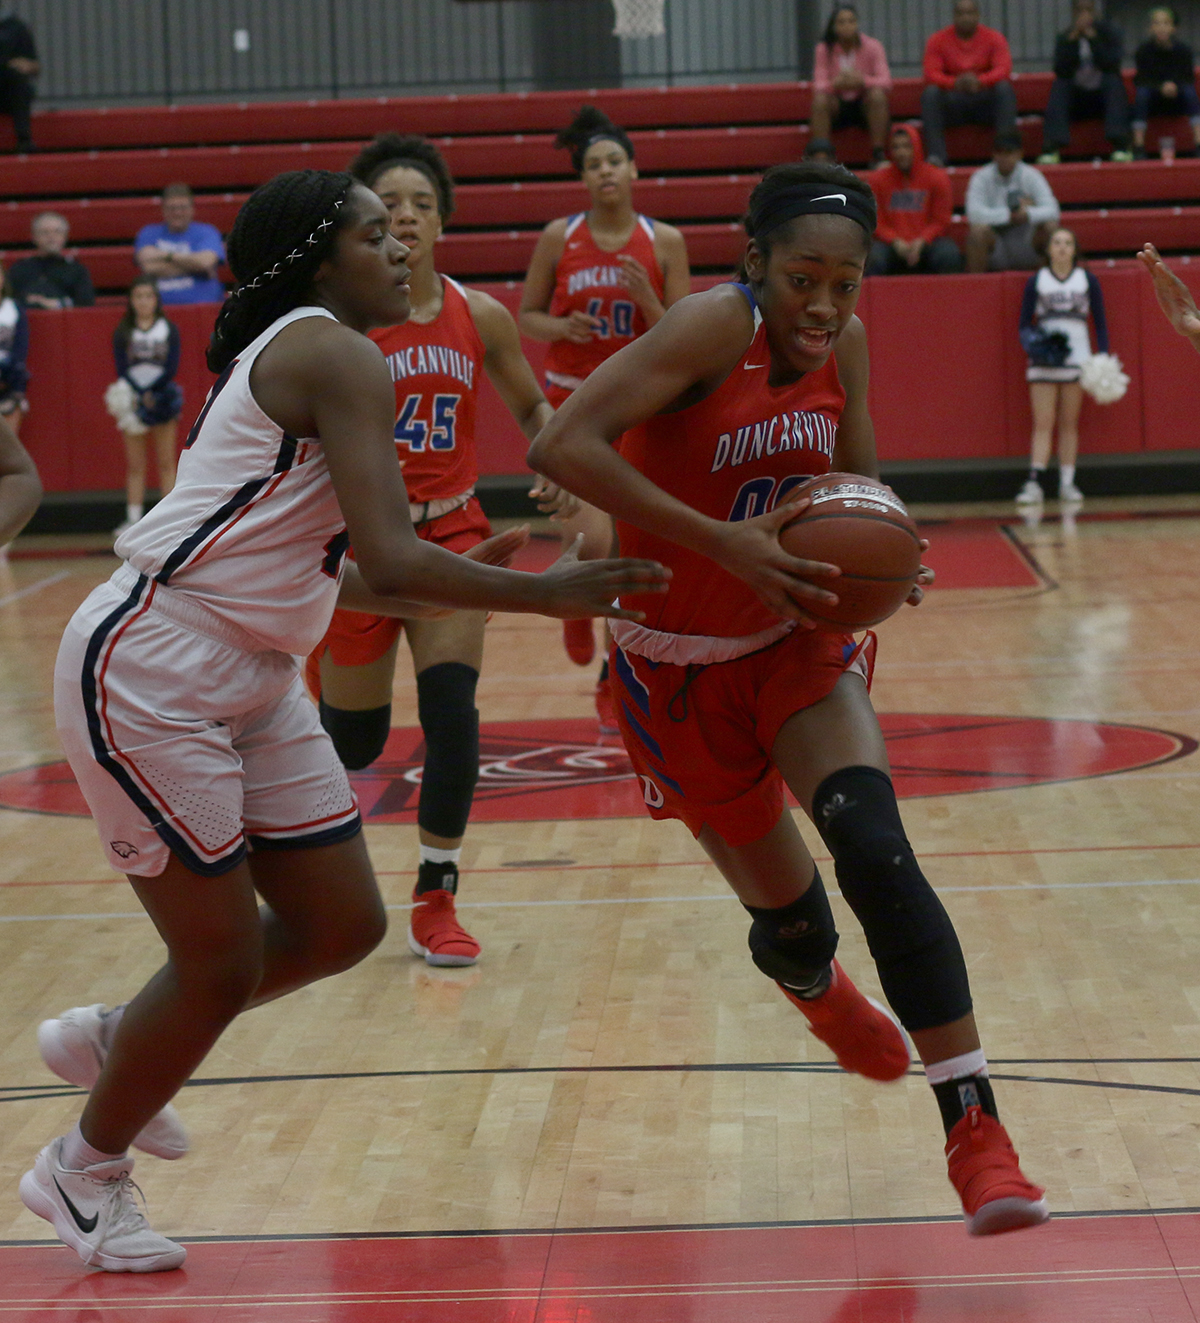 Senior Zarielle Green pushes to the basket for the shot against Allen in the third round of playoffs. (Chana Stanley photo)